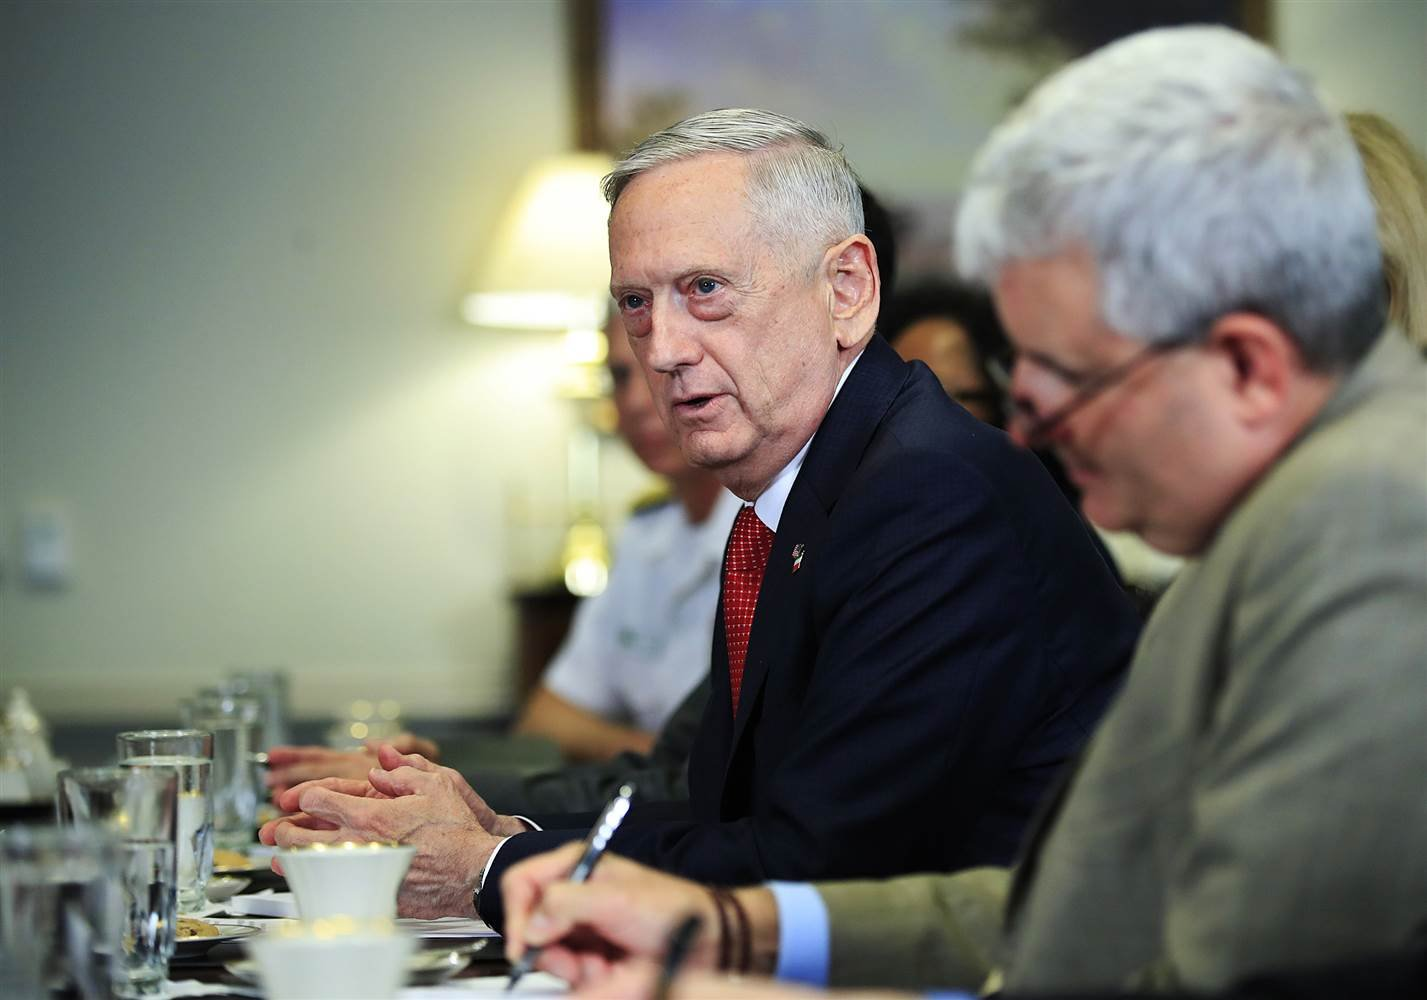 Defense Secretary Jim Mattis speaks during his meeting with Italy's Defense Minister Roberta Pinotti on July 11, 2017, at the Pentagon. (Manuel Balce Ceneta / AP)